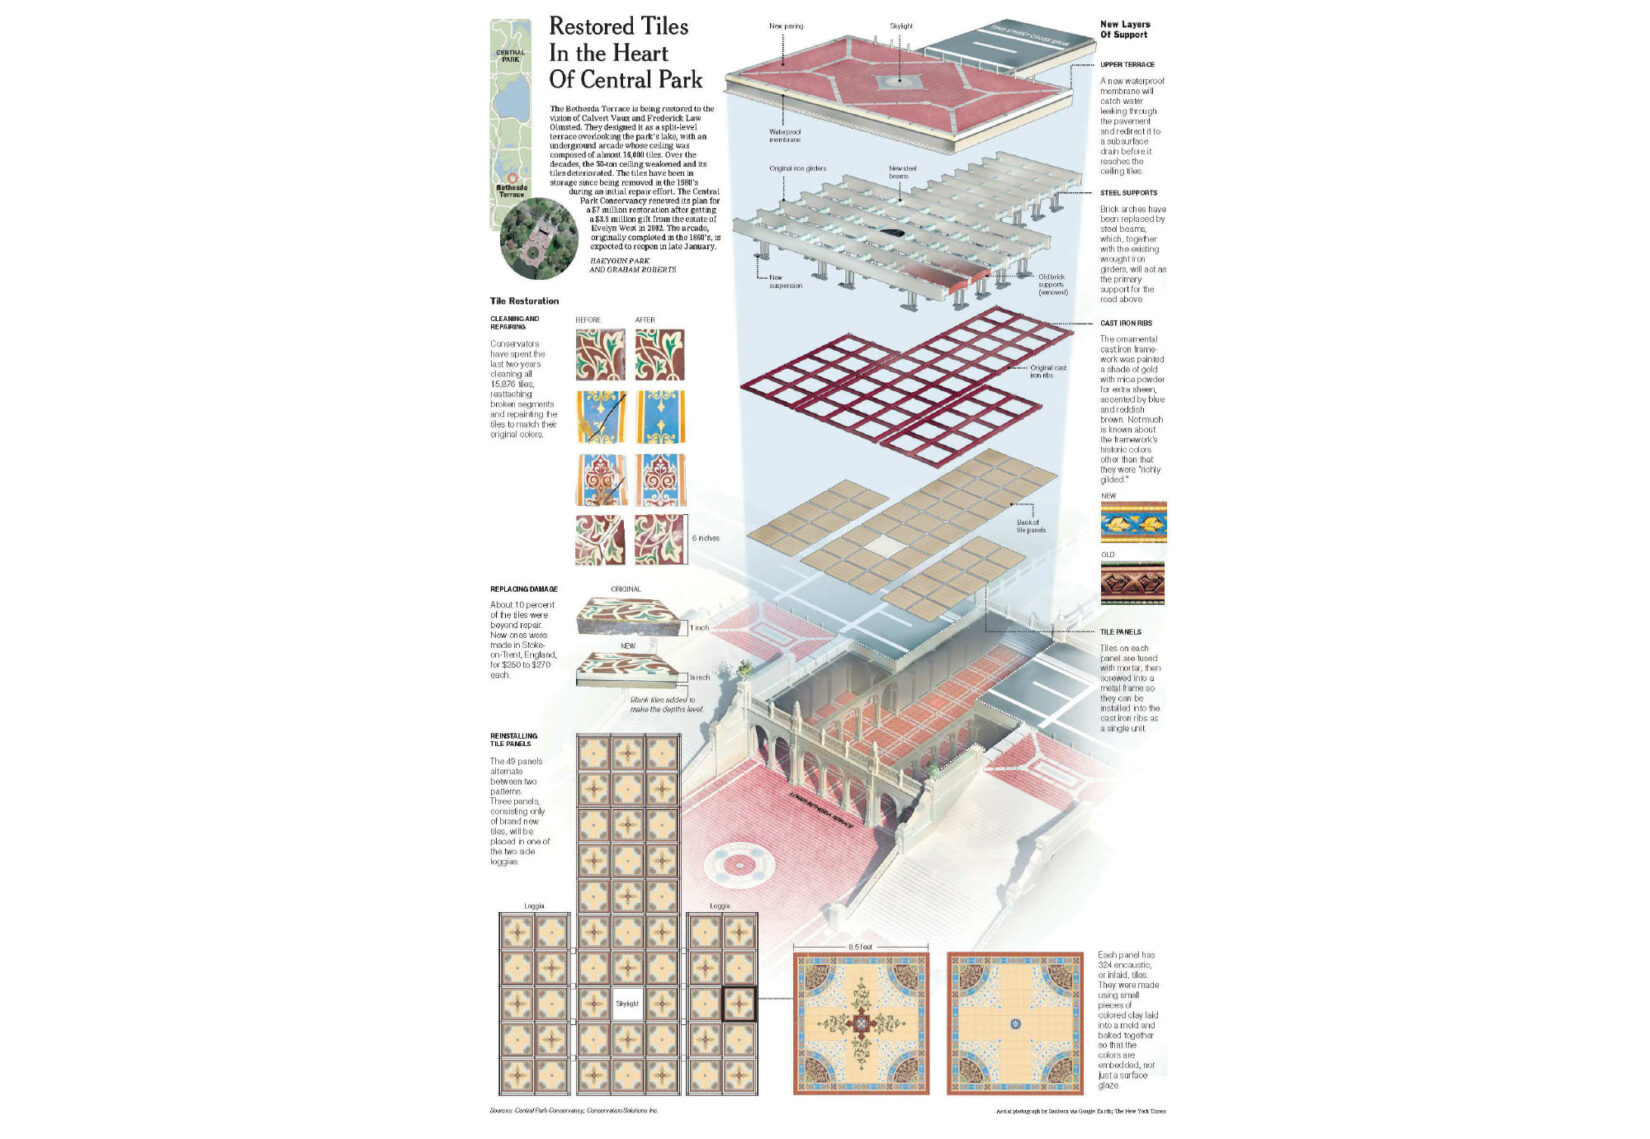 The page of infographics details the process of renovating the Minton Tiles